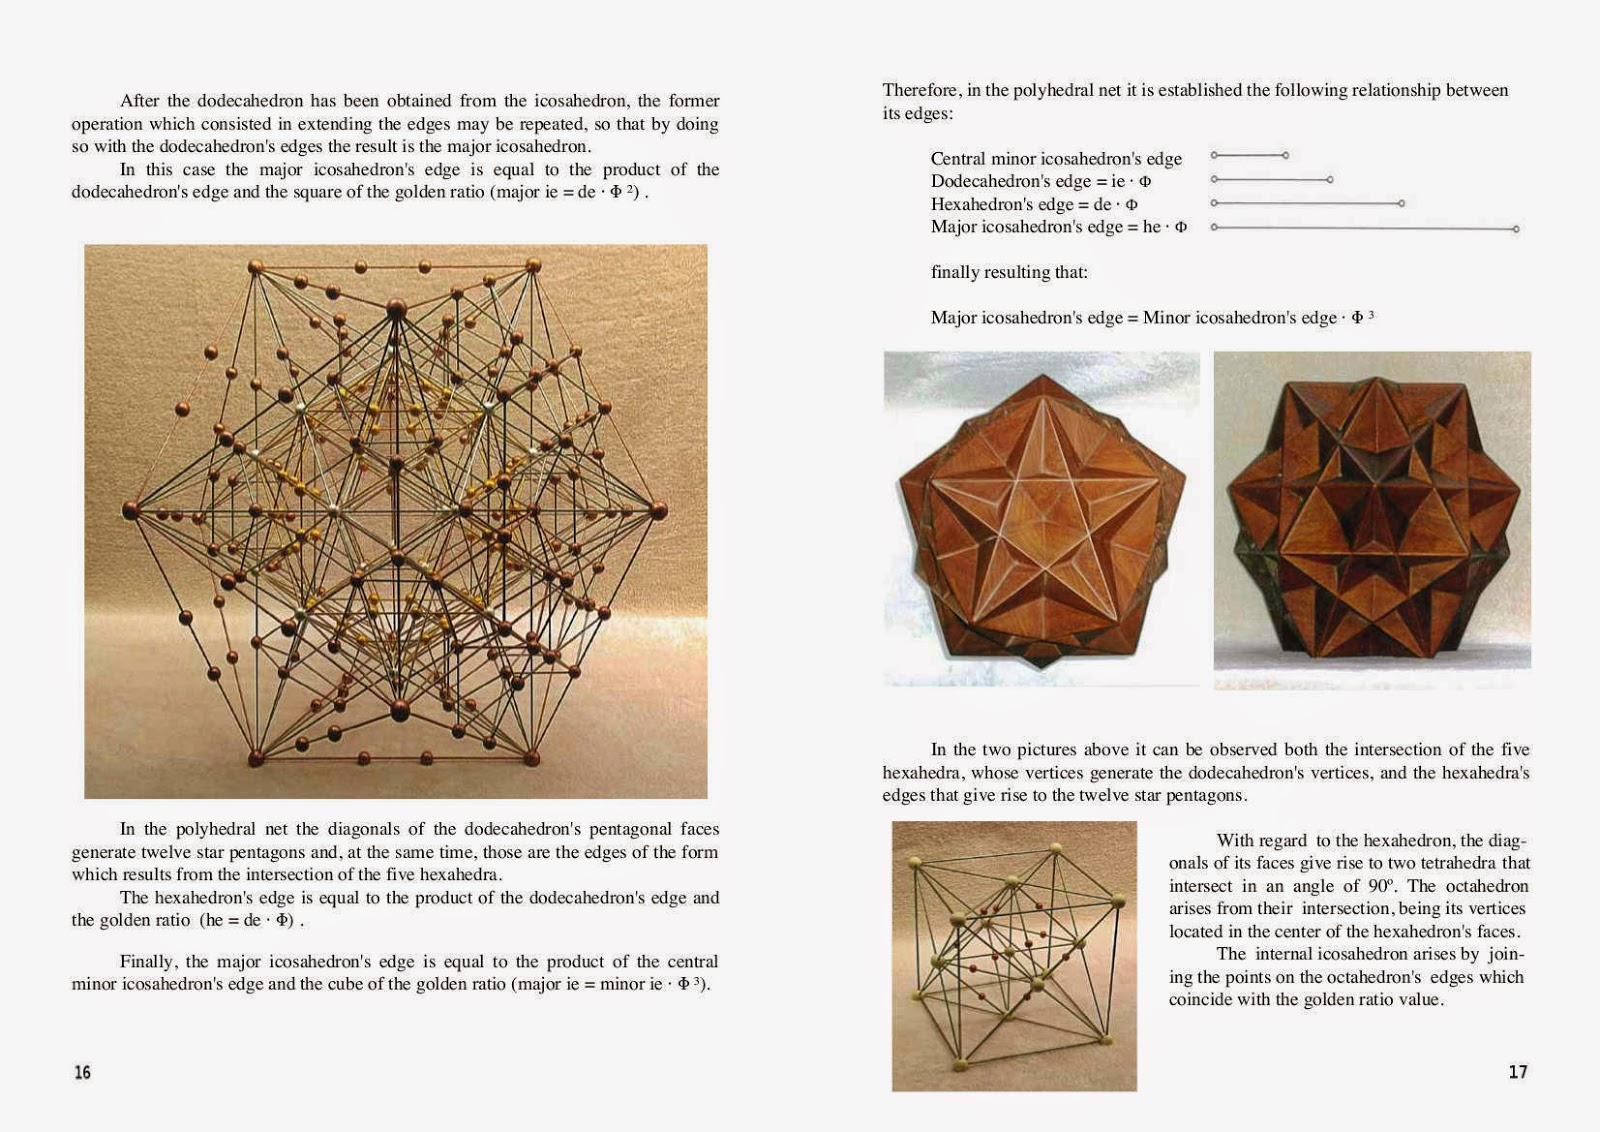 The god particle b theorem of the fractal geometric structures in the different dimensions 1234 c theorem of the cyclical translation of the unit particle 123 jeuxipadfo Image collections